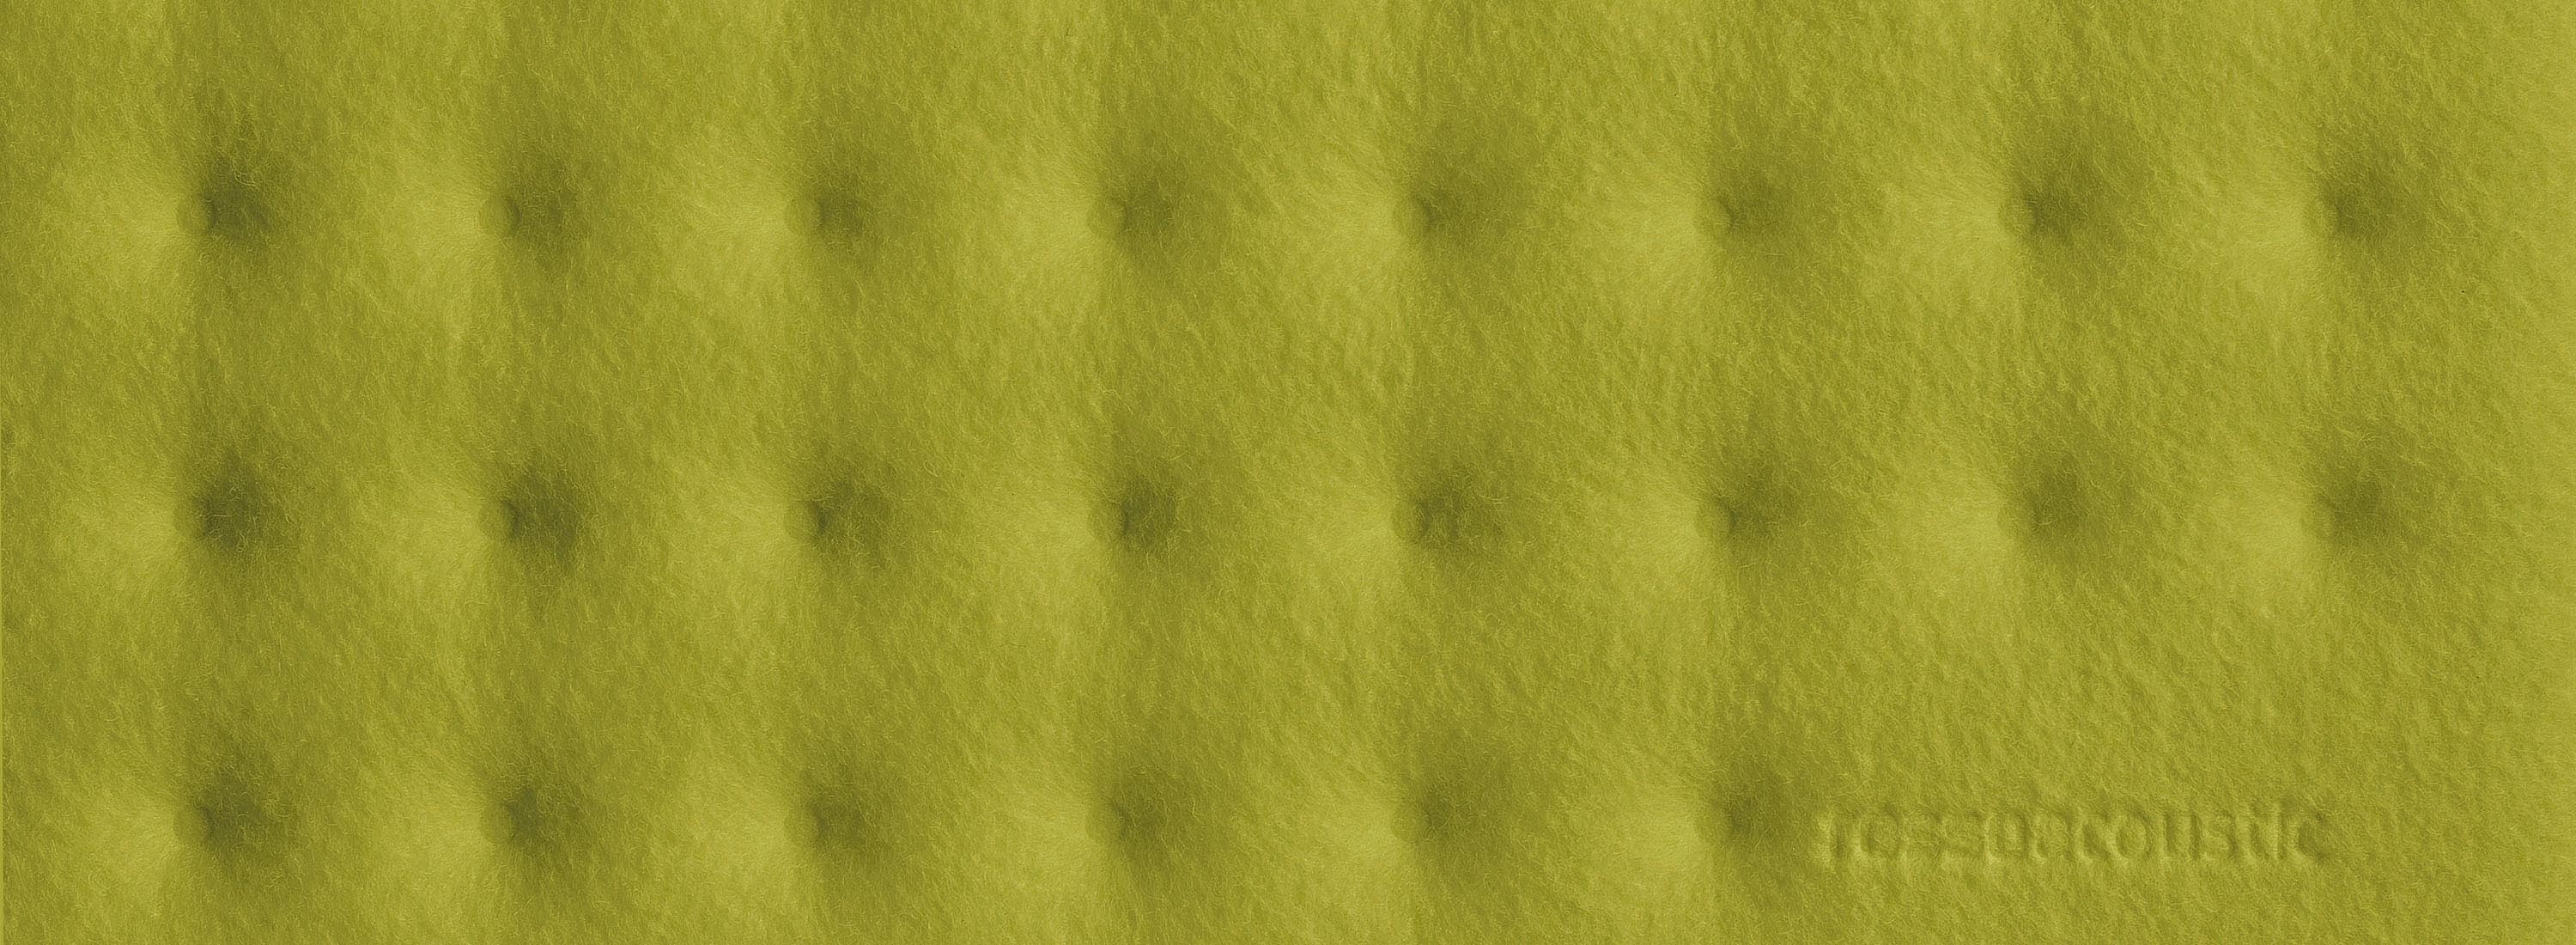 Rossoacoustic PAD Q 1200 Plus, 1200 x 1200 x 60 mm, soft moss